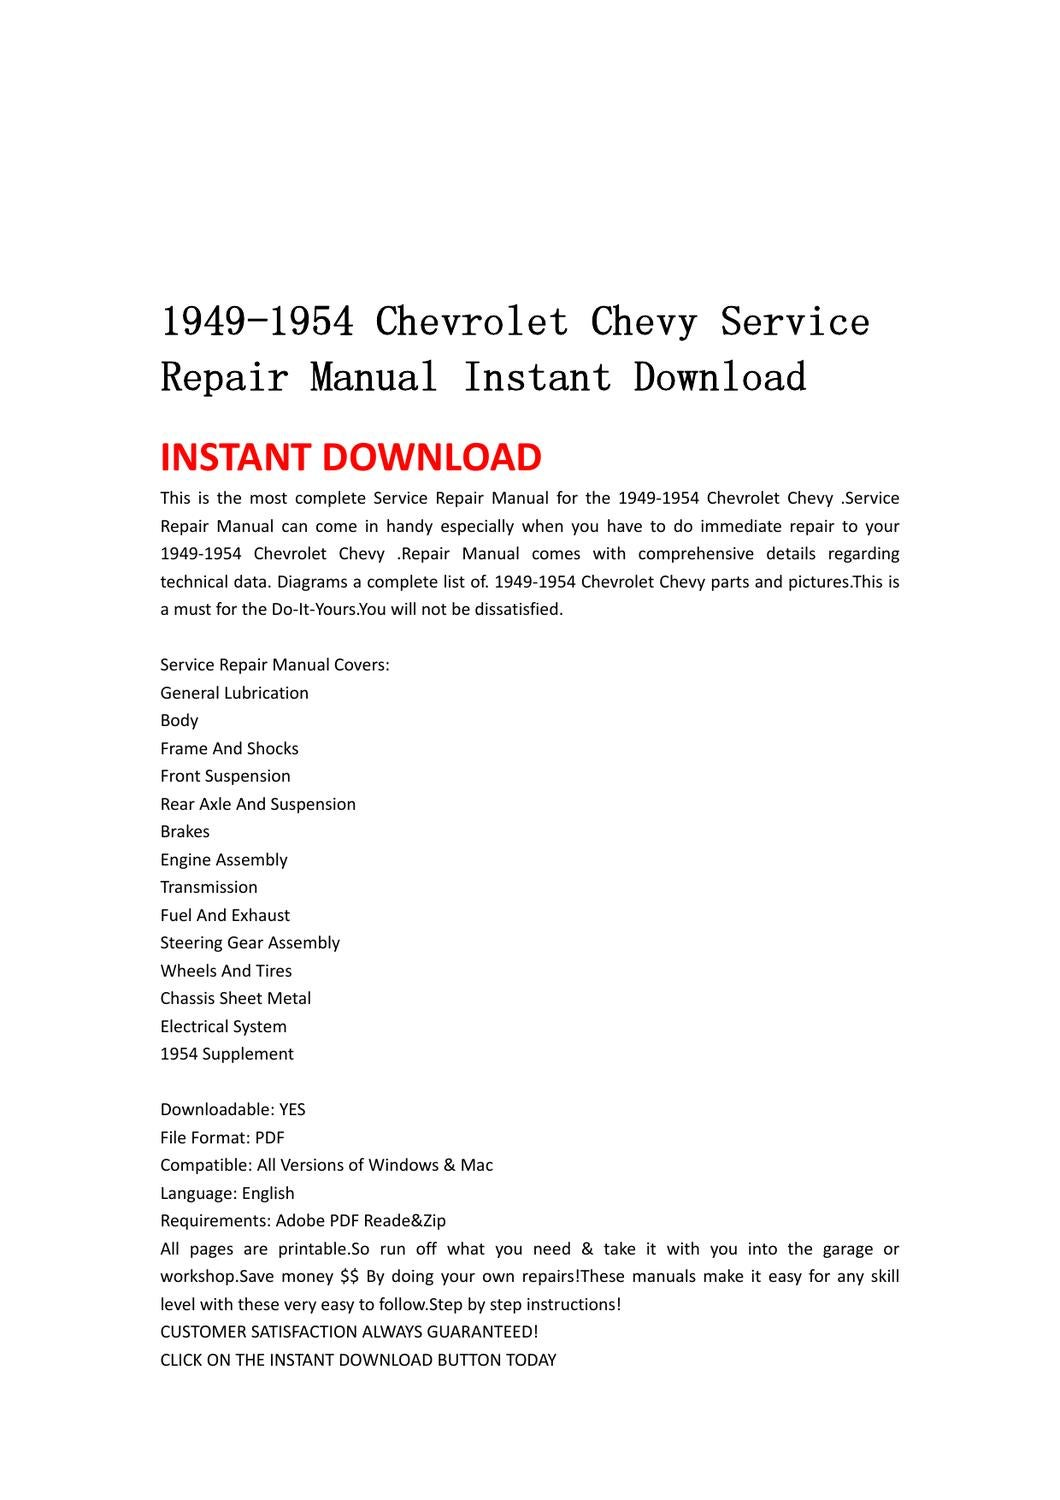 1949-1954 Chevrolet Chevy Service Repair Manual Instant Download by lin  leiww - issuu